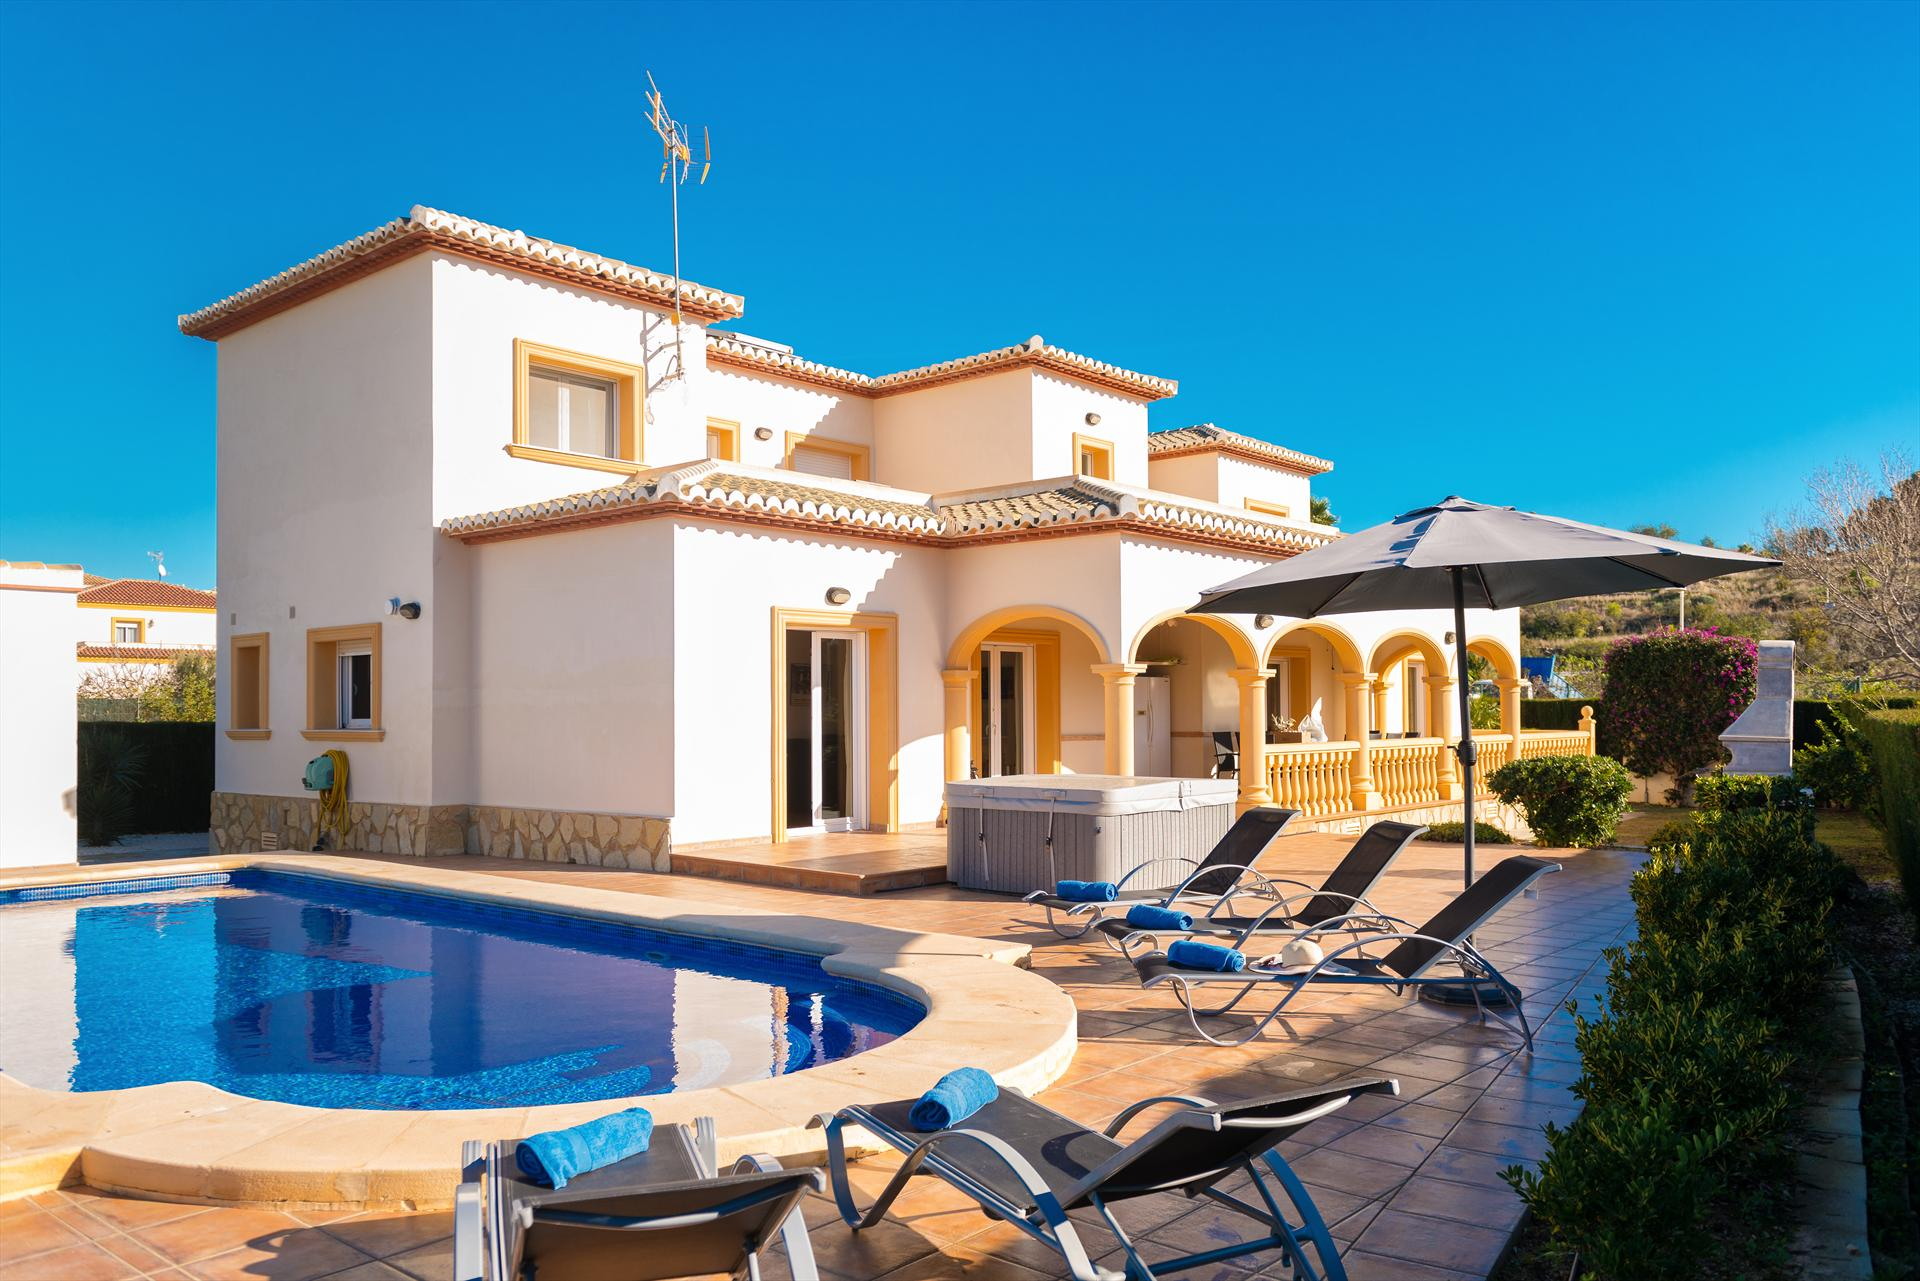 Villa Roig, Luxury villa  with private pool in Calpe, on the Costa Blanca, Spain for 10 persons...